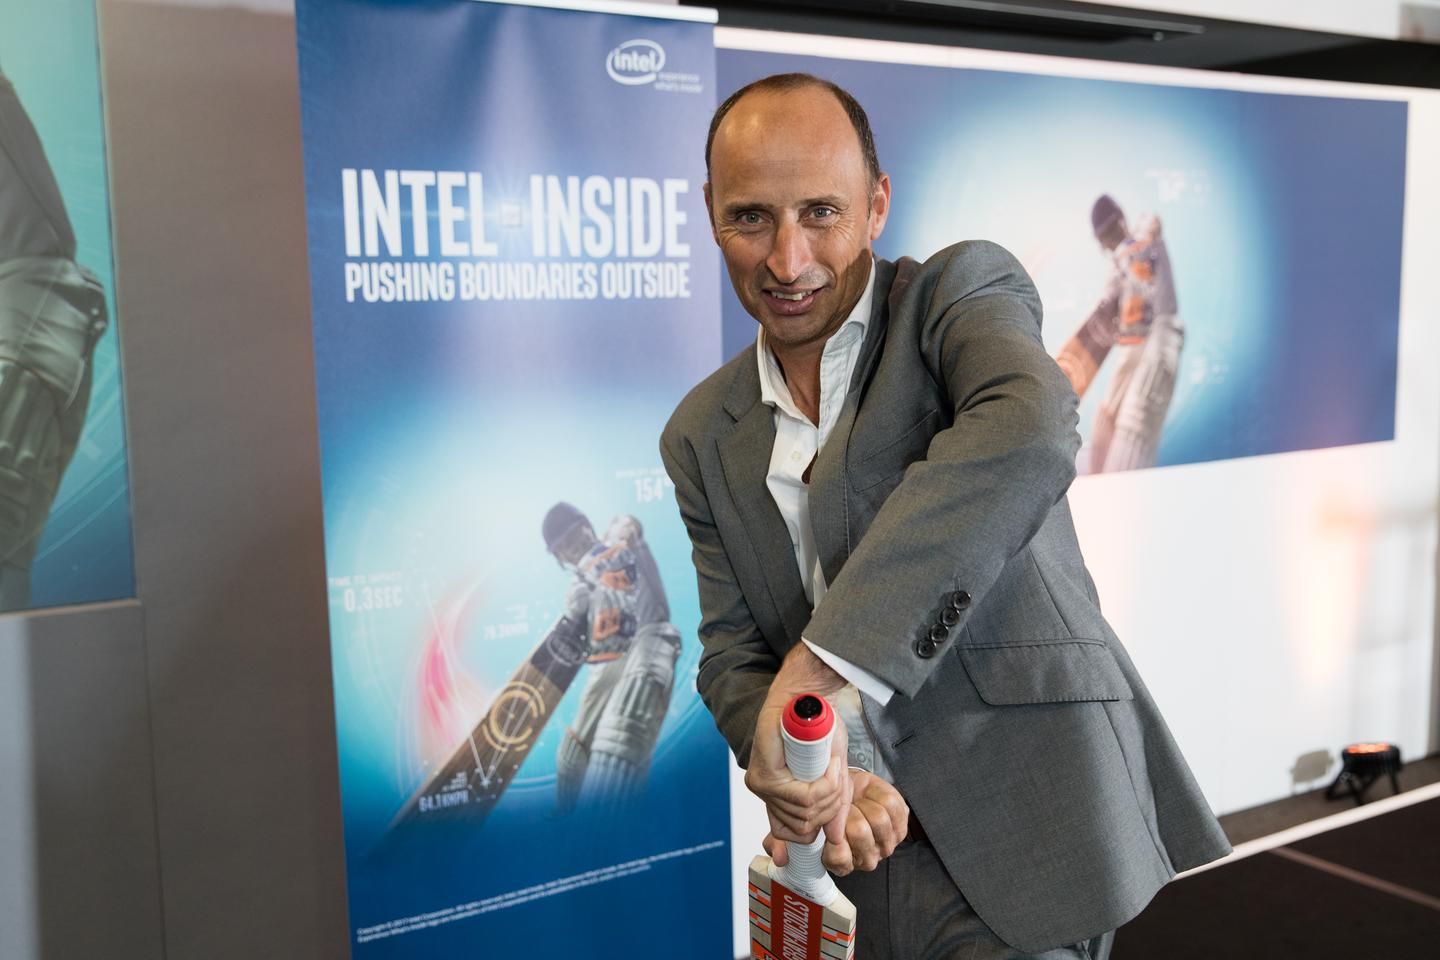 Ex-England cricketer Nasser Hussain tries out the smart bat